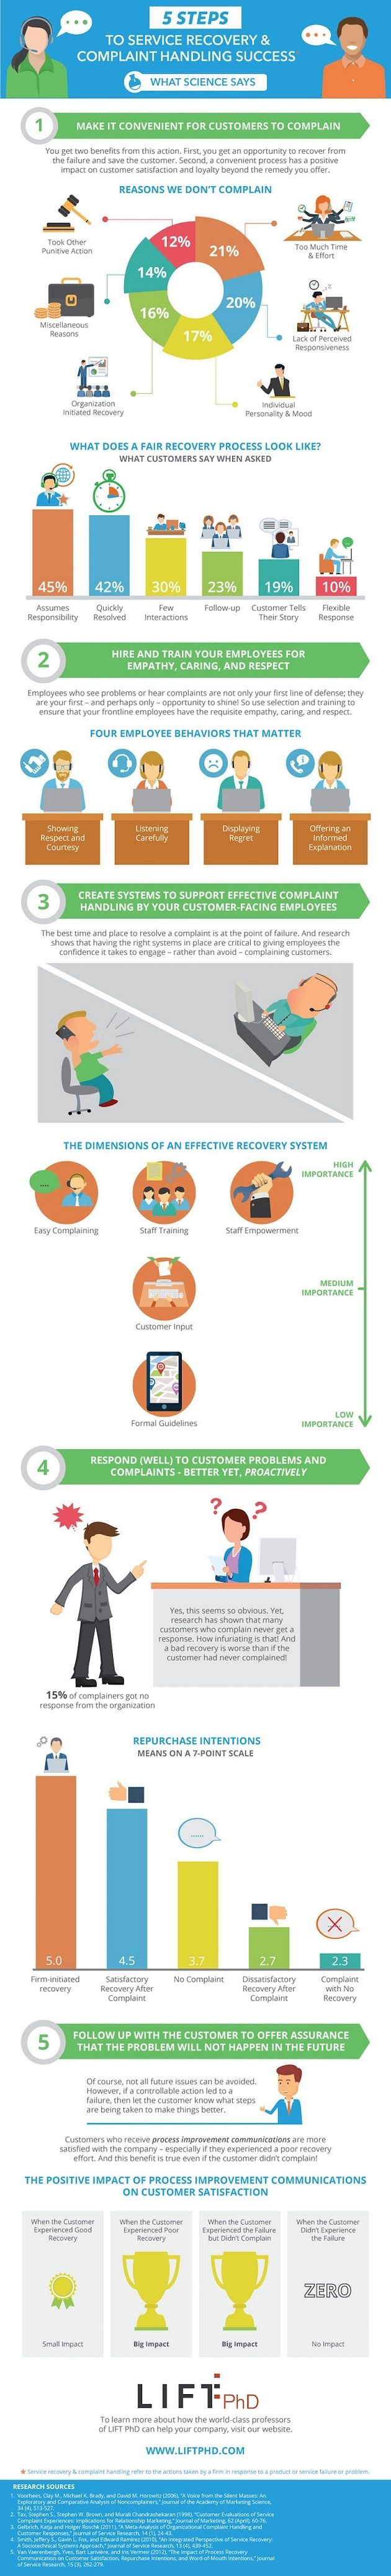 160625-five-steps-to-service-recovery-and-complaint-handling-success-infographic-preview.jpg 630×4.149 pixels